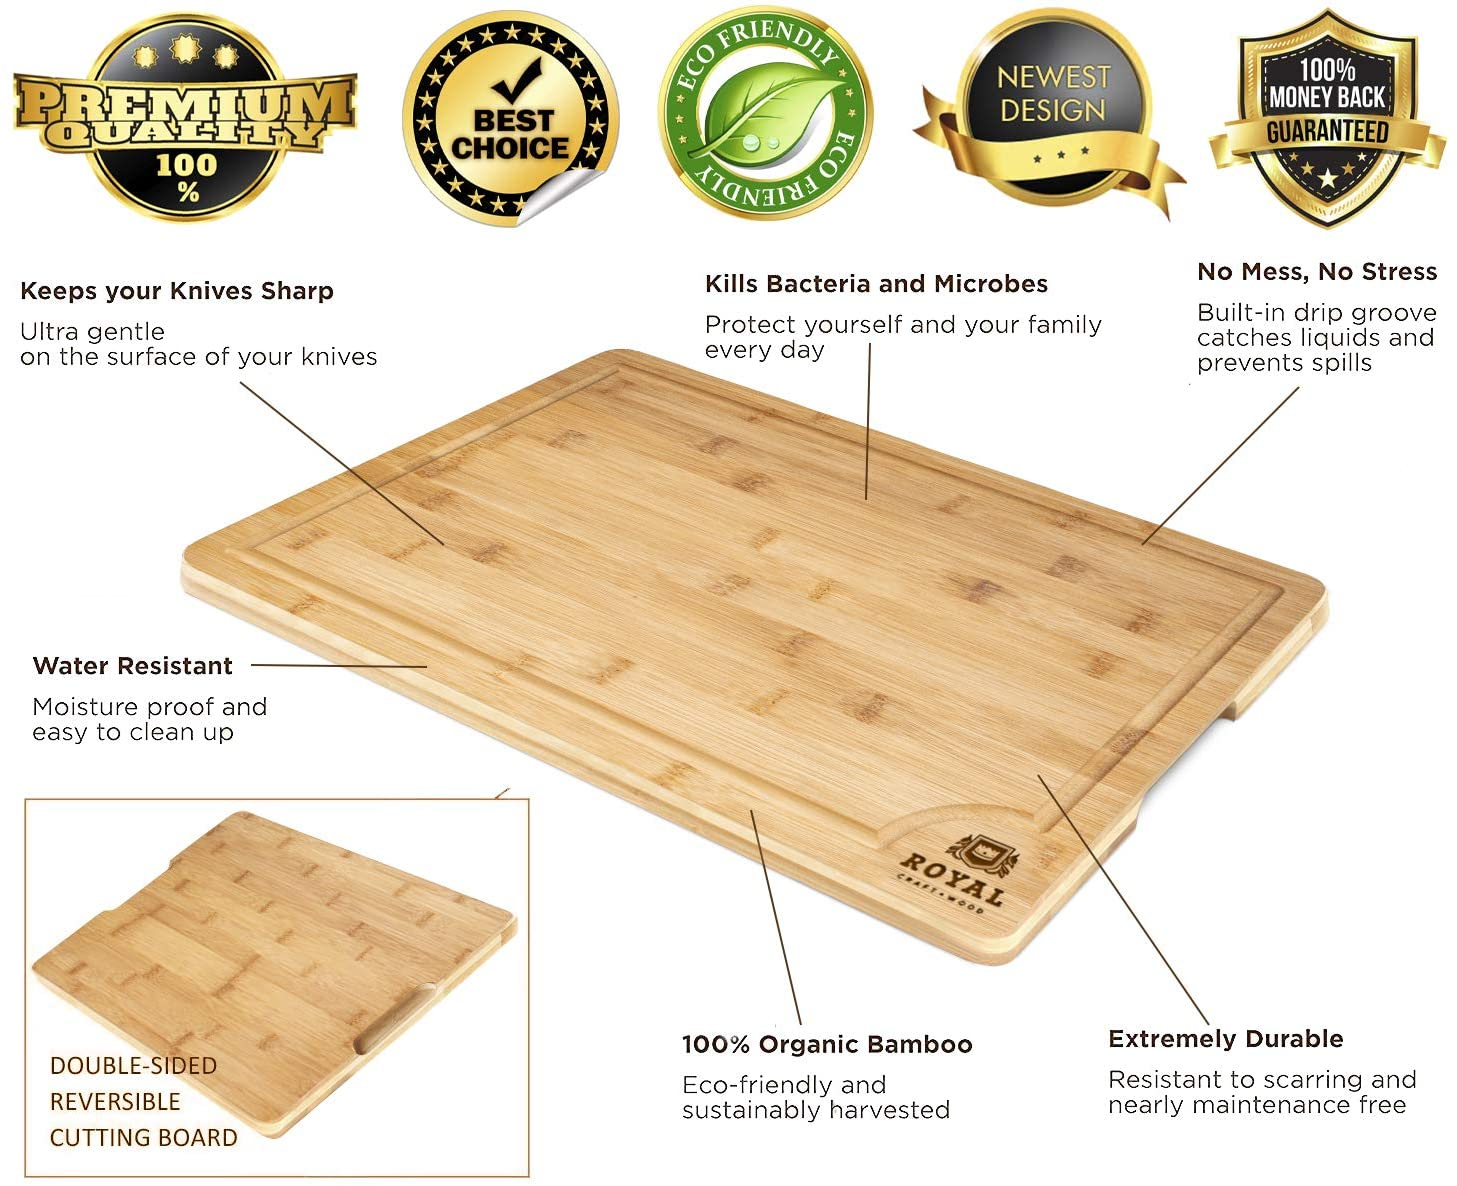 Top 10 Best Cutting Boards in 2021 Reviews